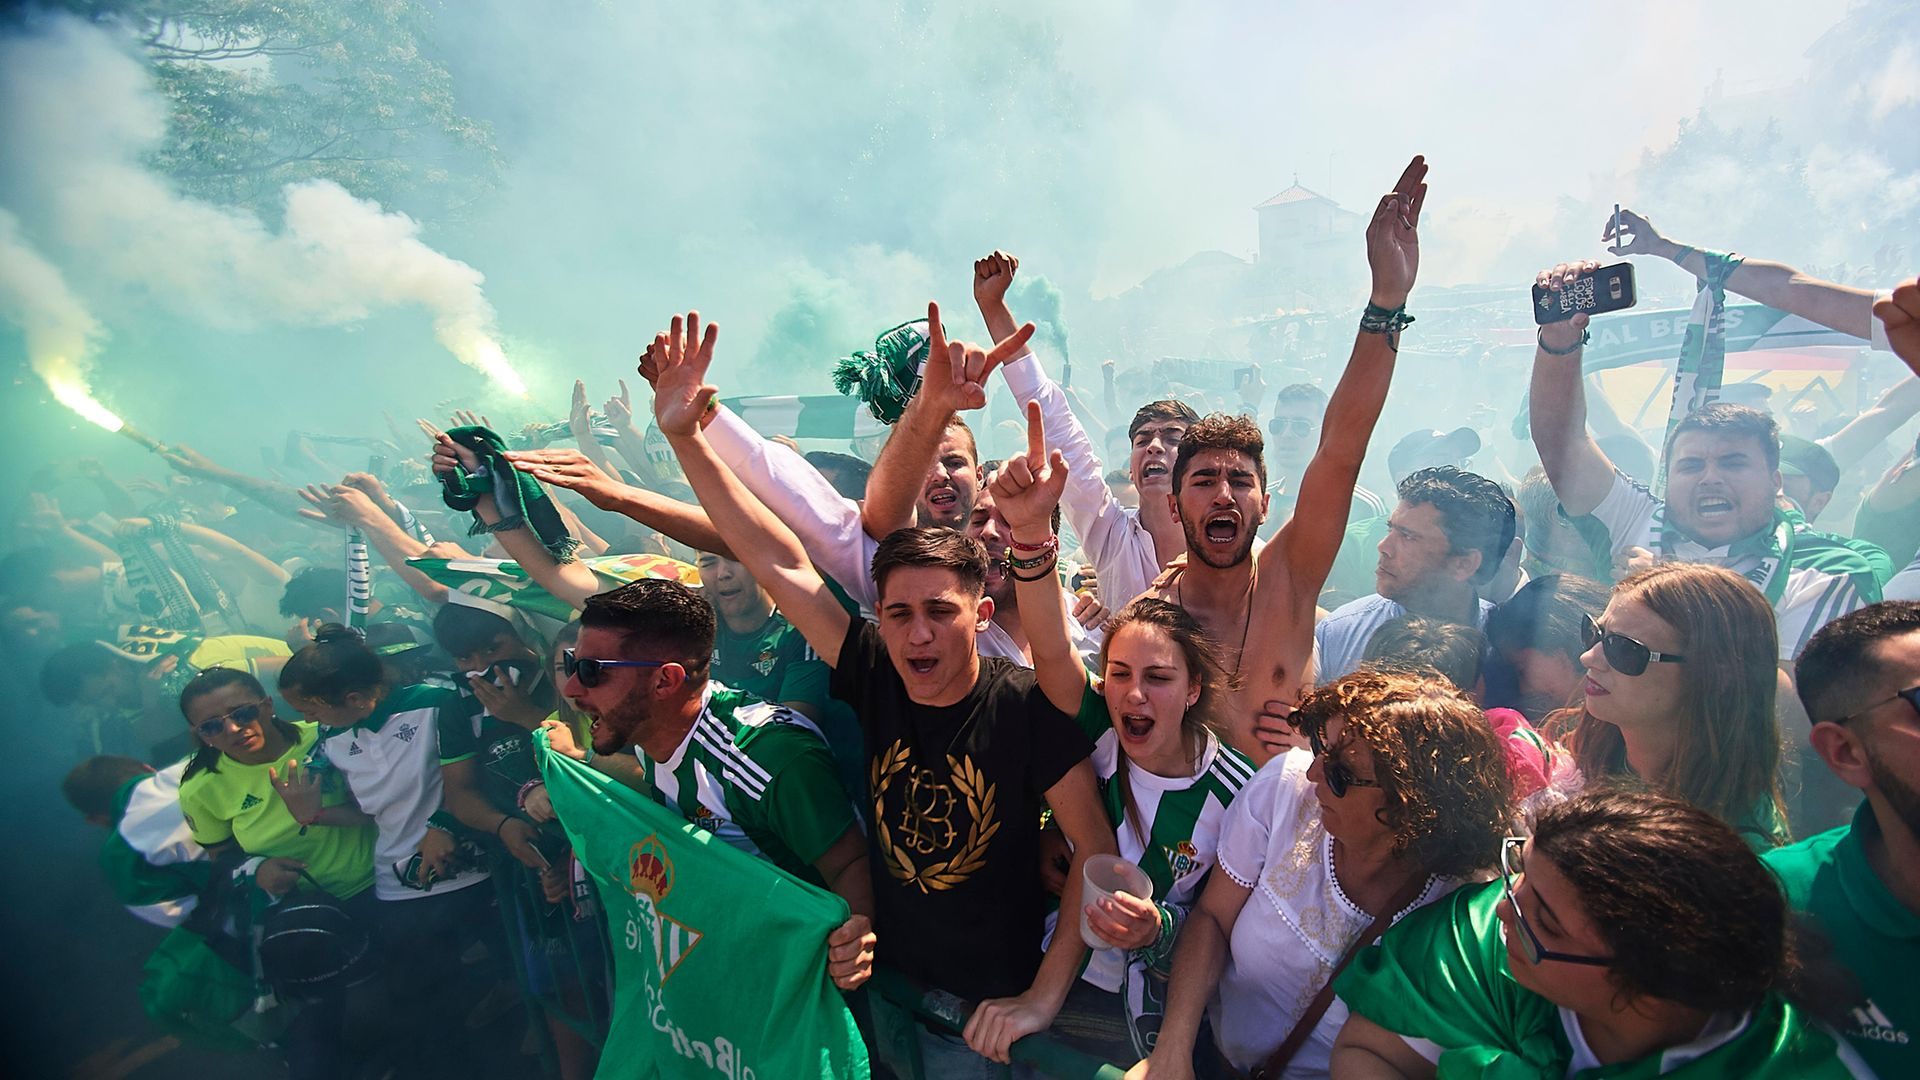 Fans of Real Betis support their team as it arrives at the stadium for a game against local rivals Sevilla in 2018 - Credit: Getty Images